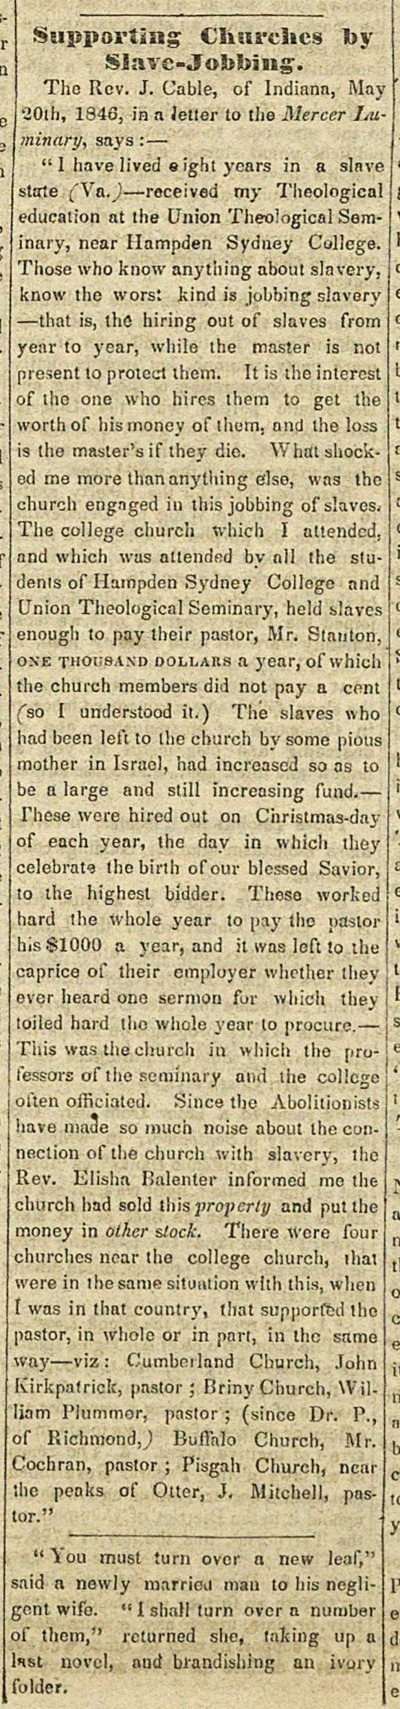 Supporting Churches By Slave-jobbing image